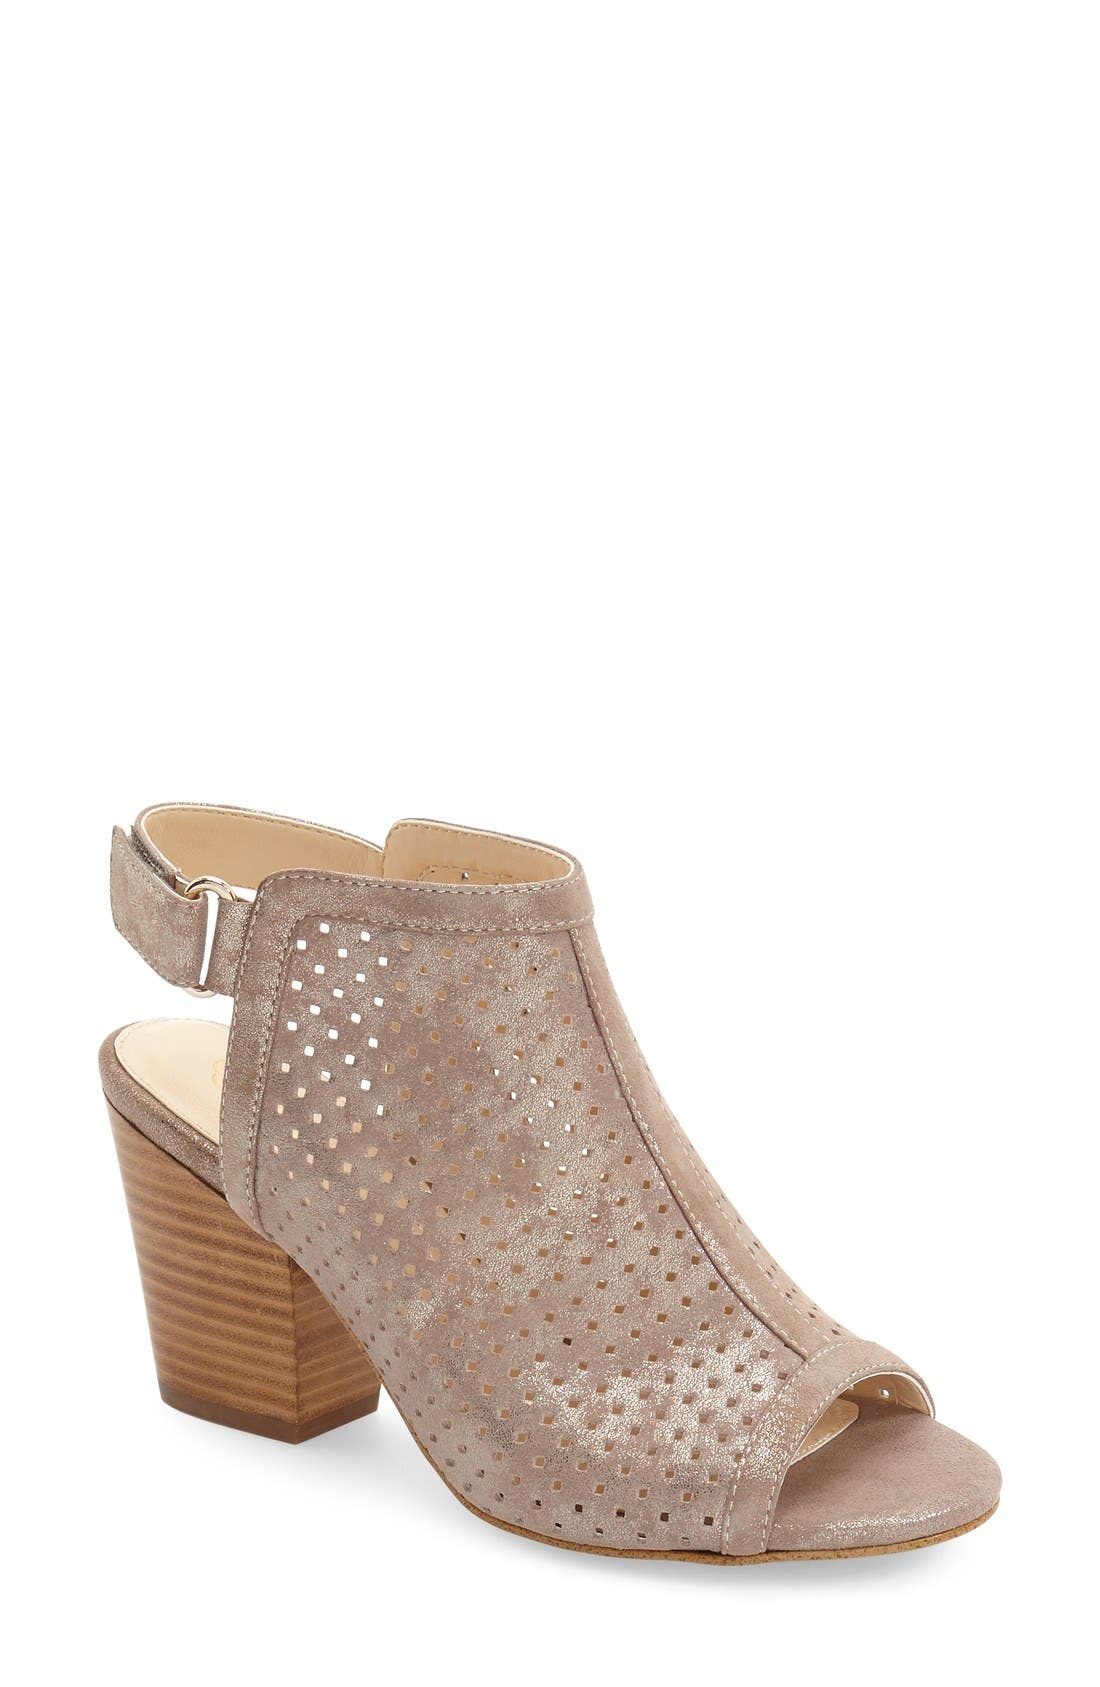 'Lora' Perforated Open-Toe Bootie Sandal,                         Main,                         color, 040